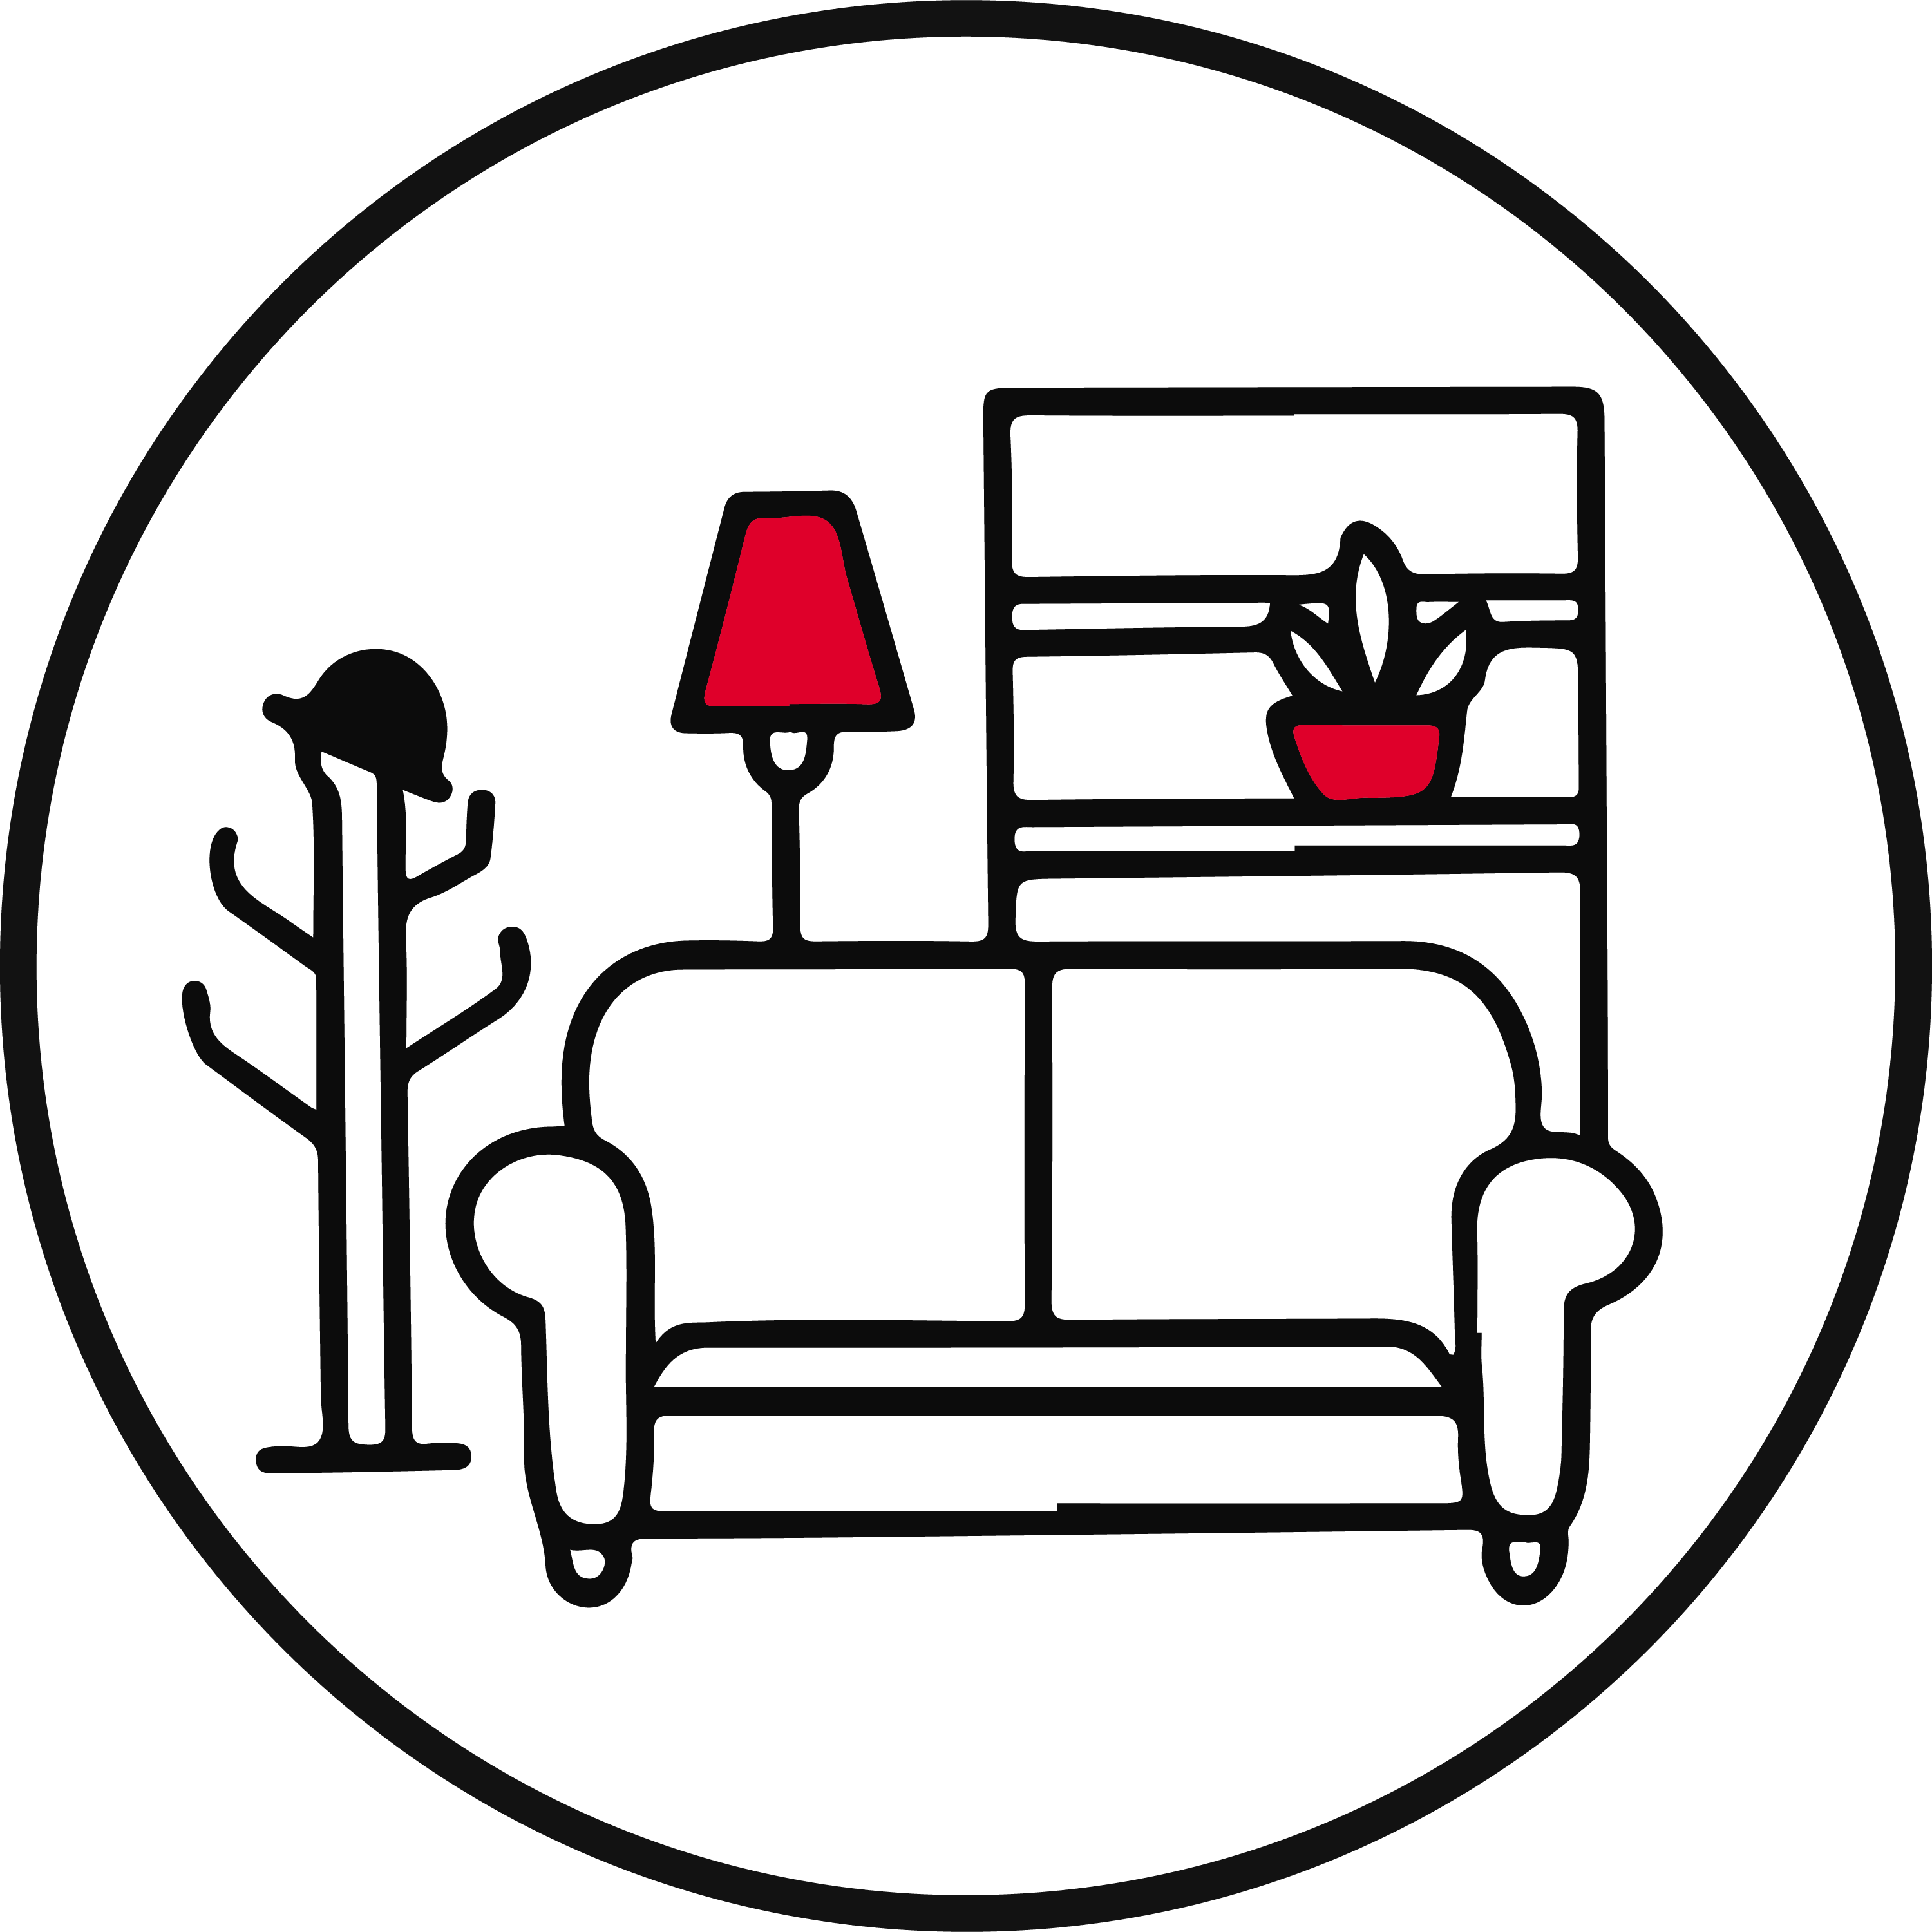 Housing Essentials Icon with household supplies like a couch, plant, shelter, and lamp